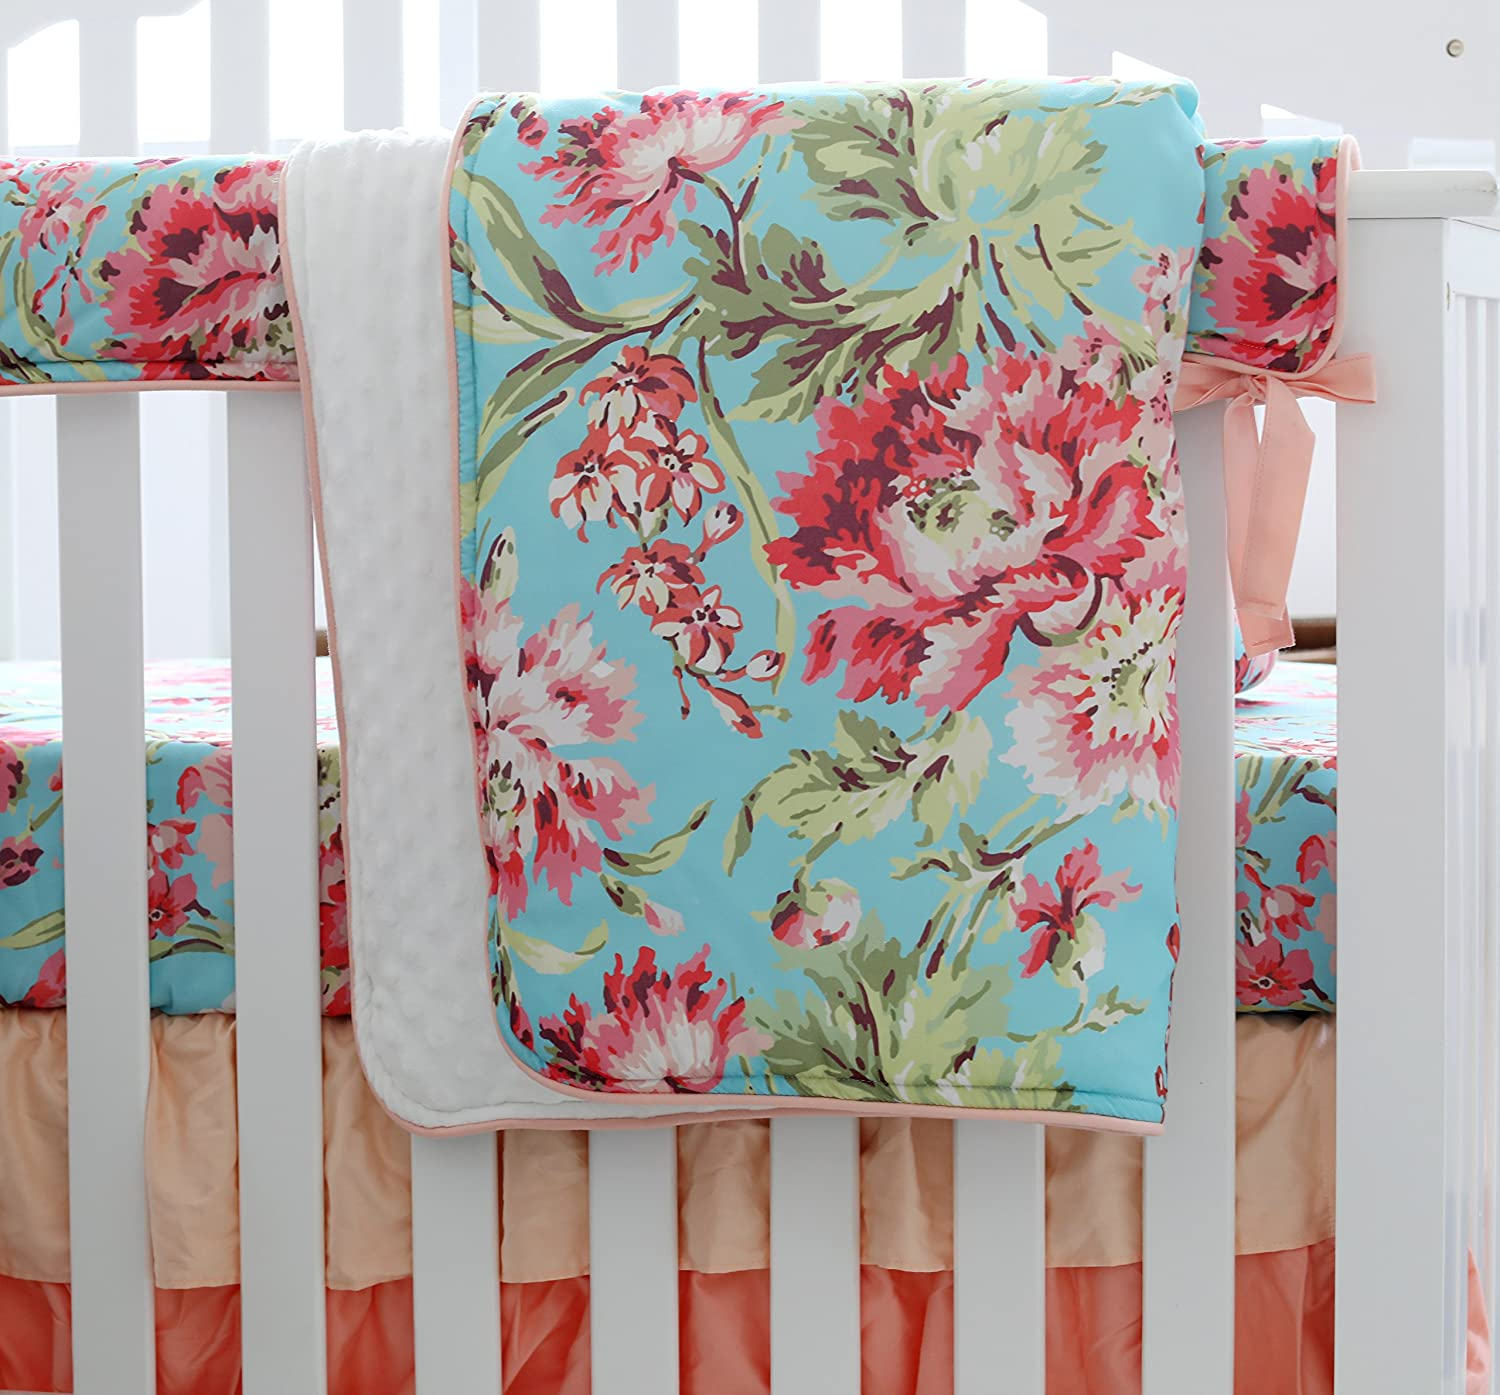 Aqua 3 pcs Set Boho Floral Ruffle Baby Minky Blanket Water Color Peach Floral Nursery Crib Skirt Set Baby Girl Crib Bedding